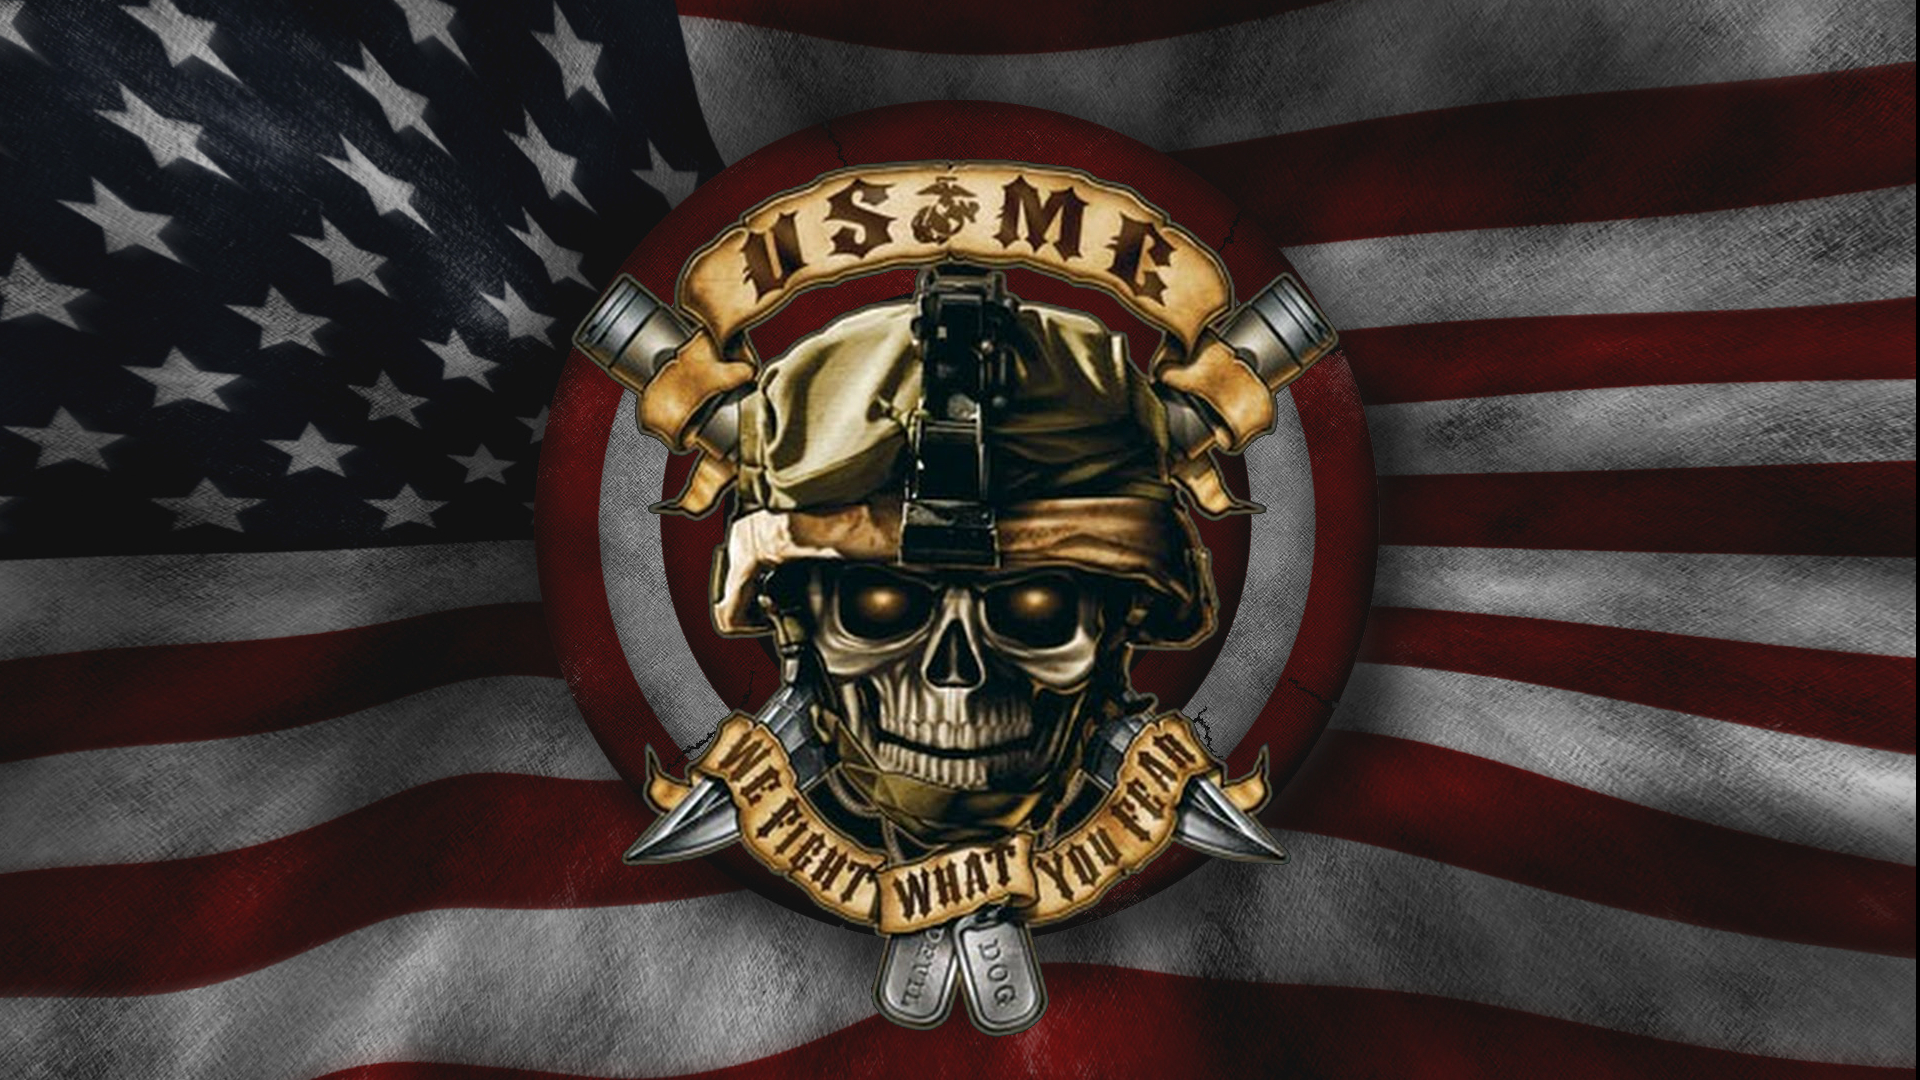 USMC Wallpaper 1920x1080 - WallpaperSafari